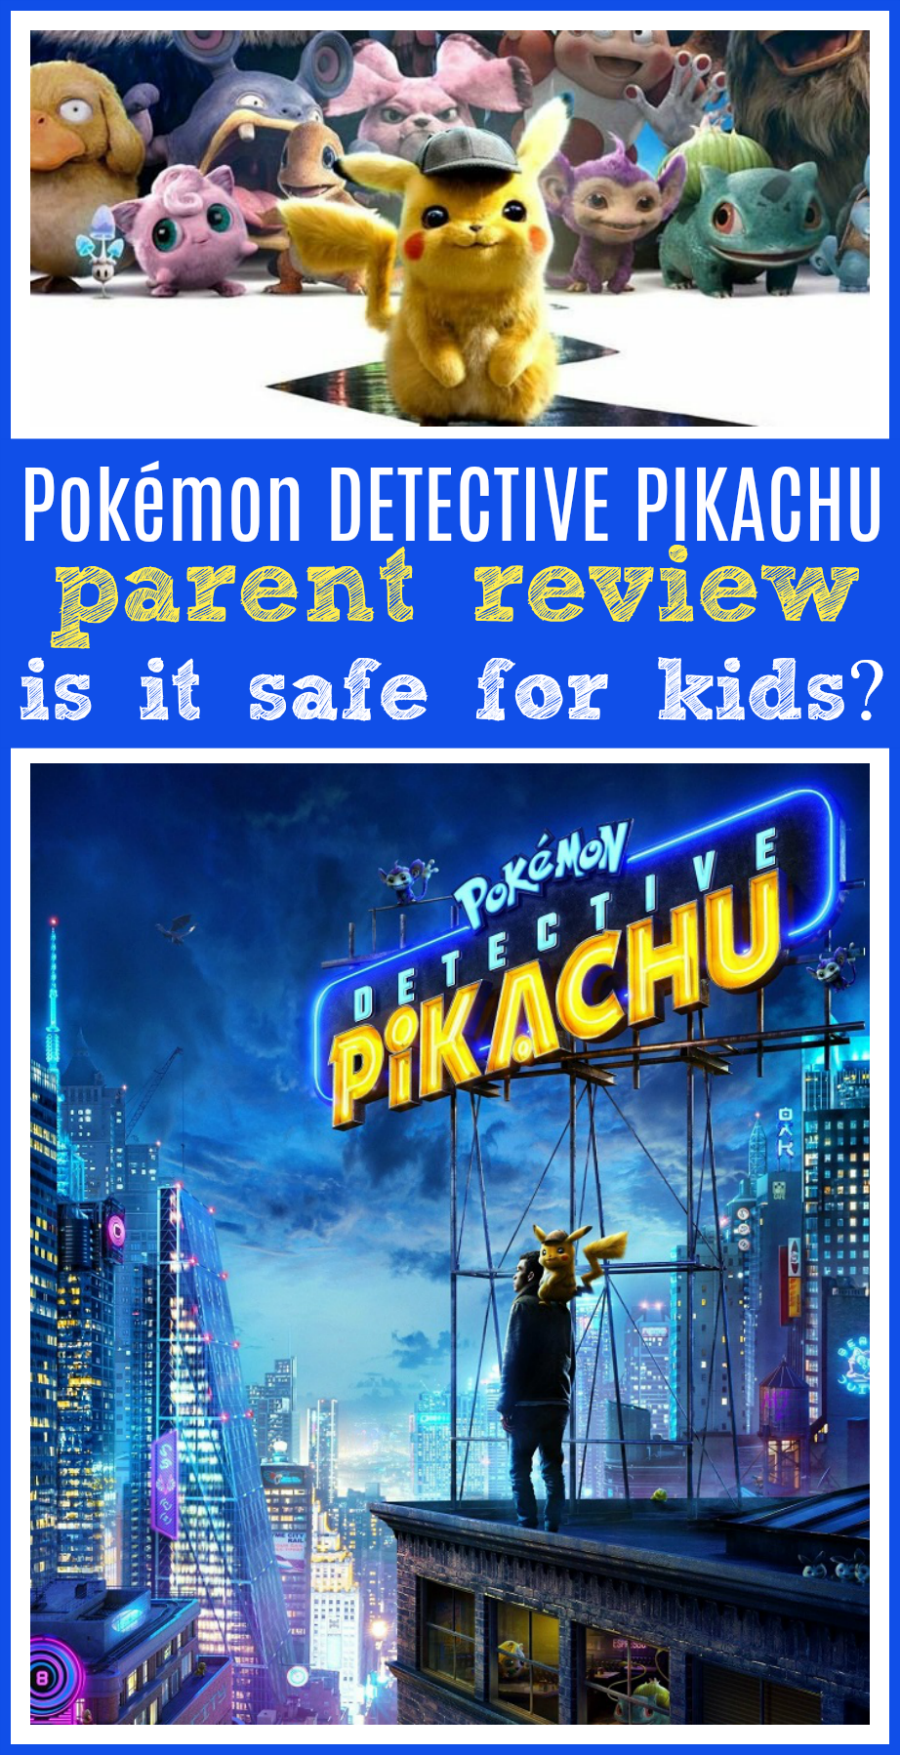 Pokémon detective pikachu parent movie review